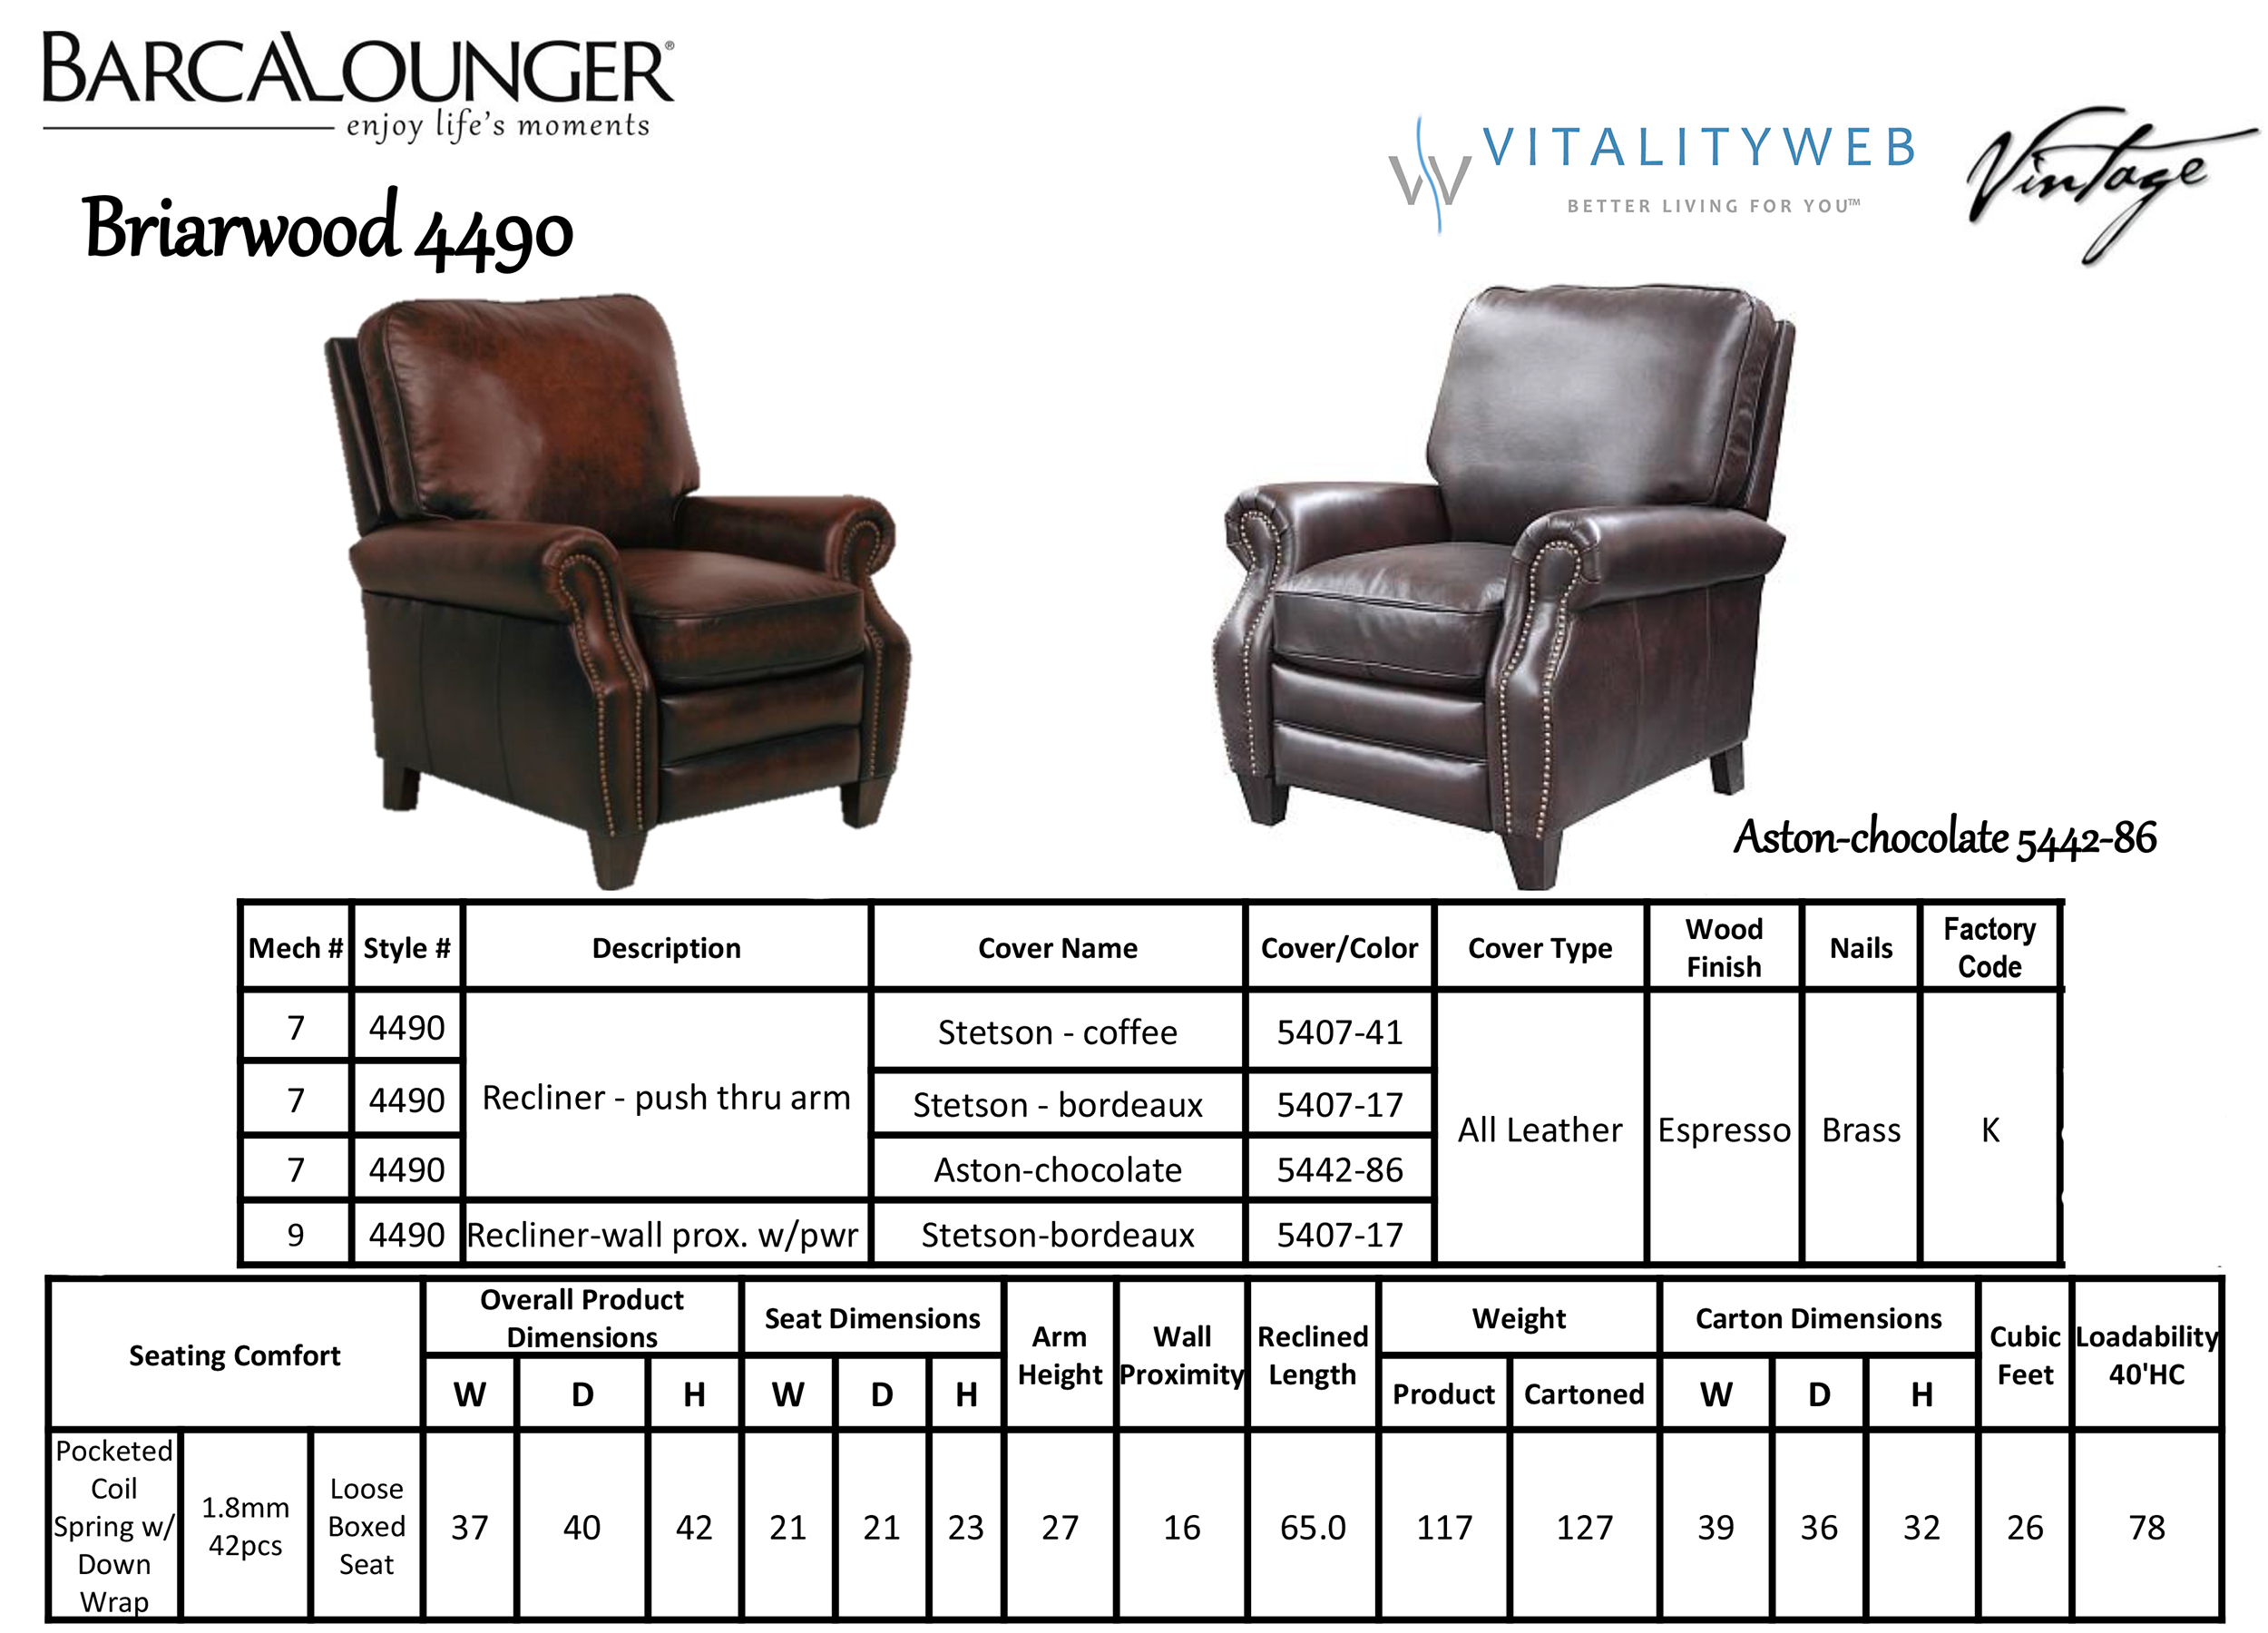 Barcalounger Briarwood 4490 Leather Recliner Chair Dimensions  sc 1 st  Vitalityweb.com & Barcalounger Briarwood II Recliner Chair - Leather Recliner Chair ... islam-shia.org